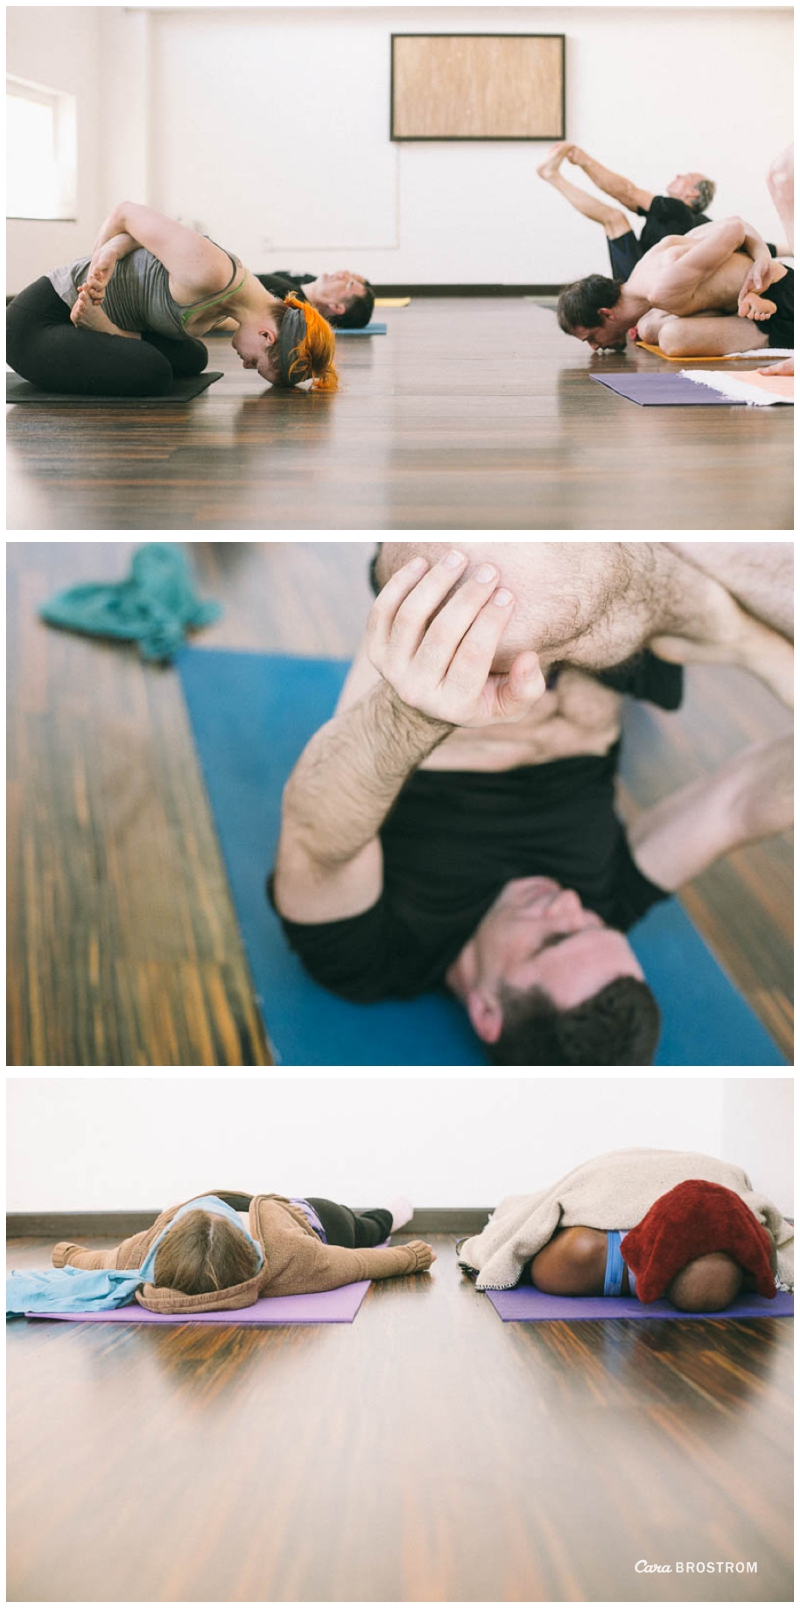 Finishing poses. Mysore style Ashtanga Yoga. Photography by Cara Brostrom.